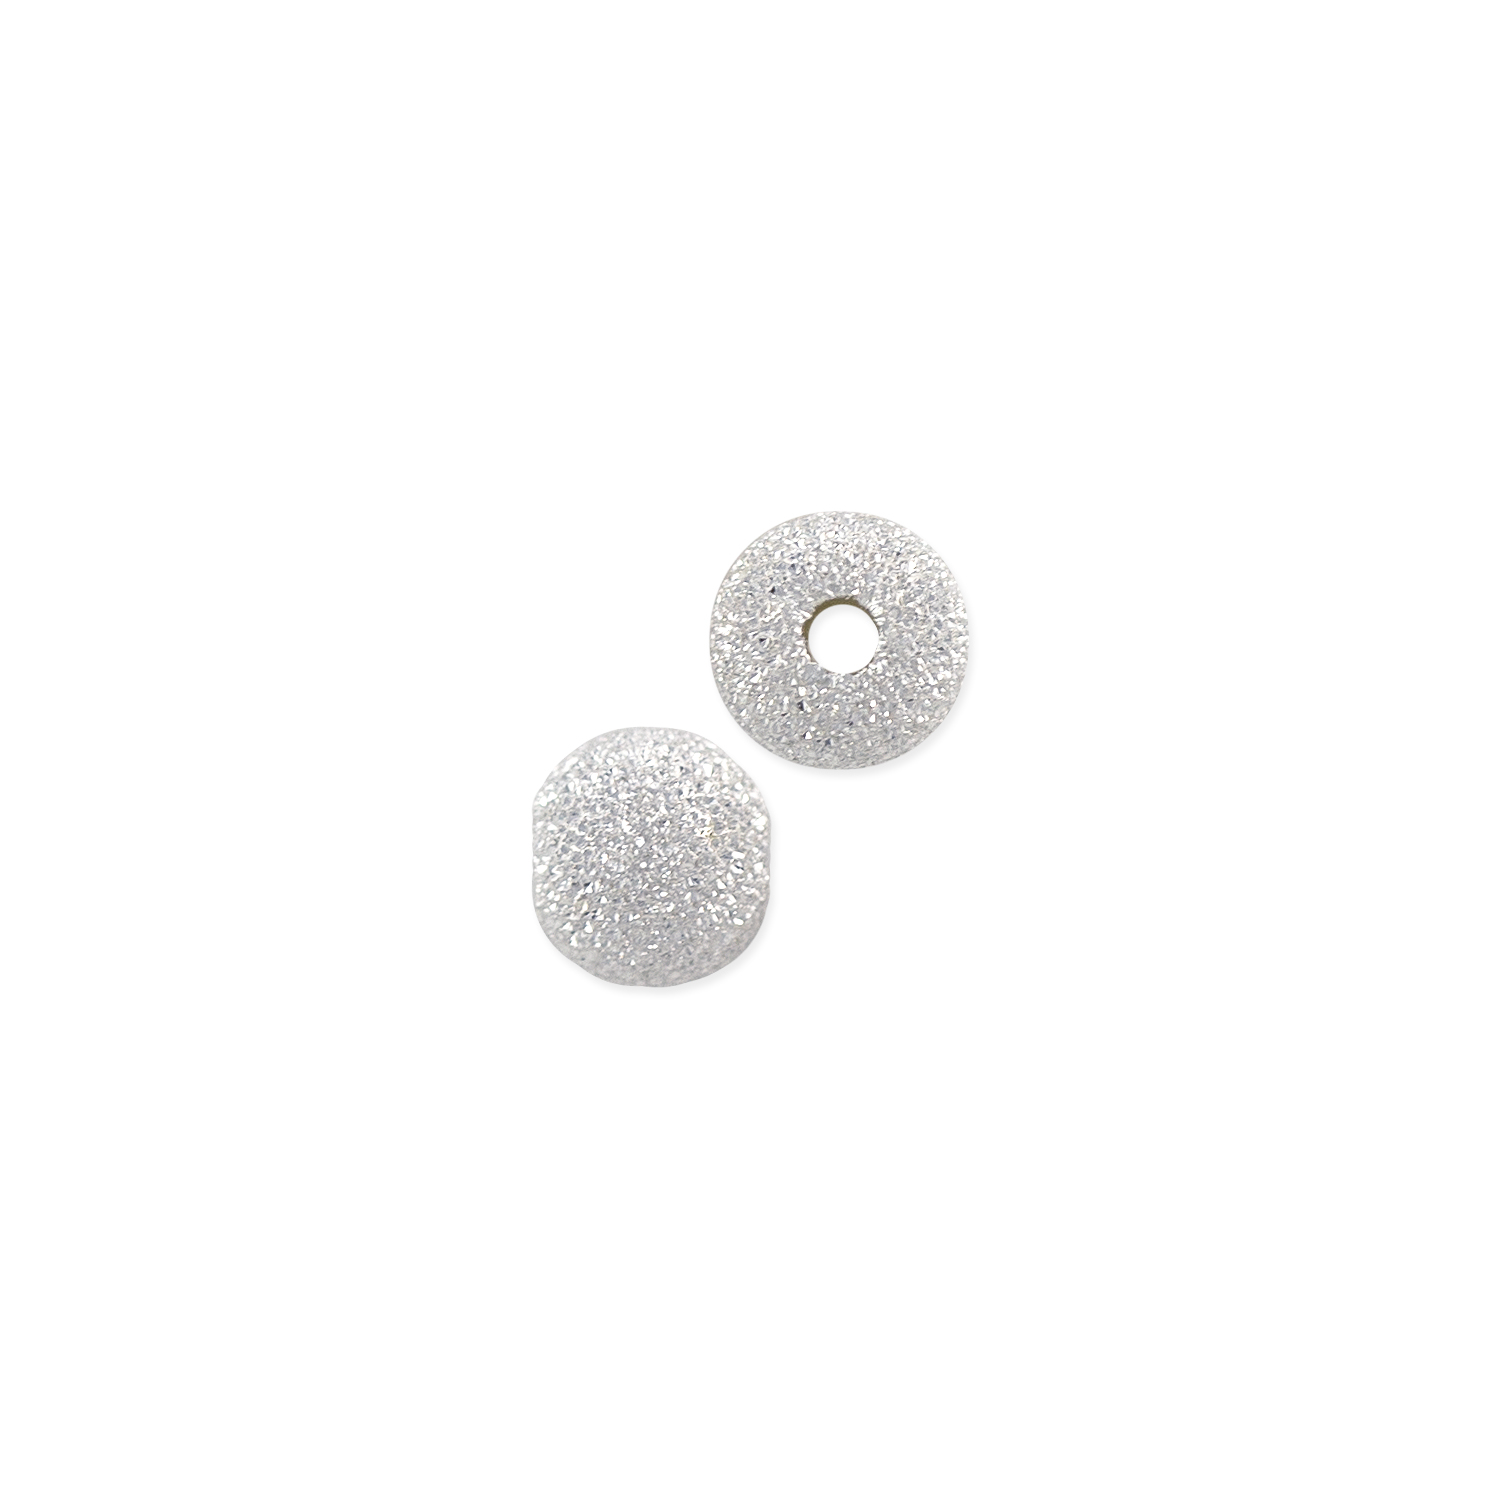 Stardust Beads 6mm Sterling Silver (1-Pc)